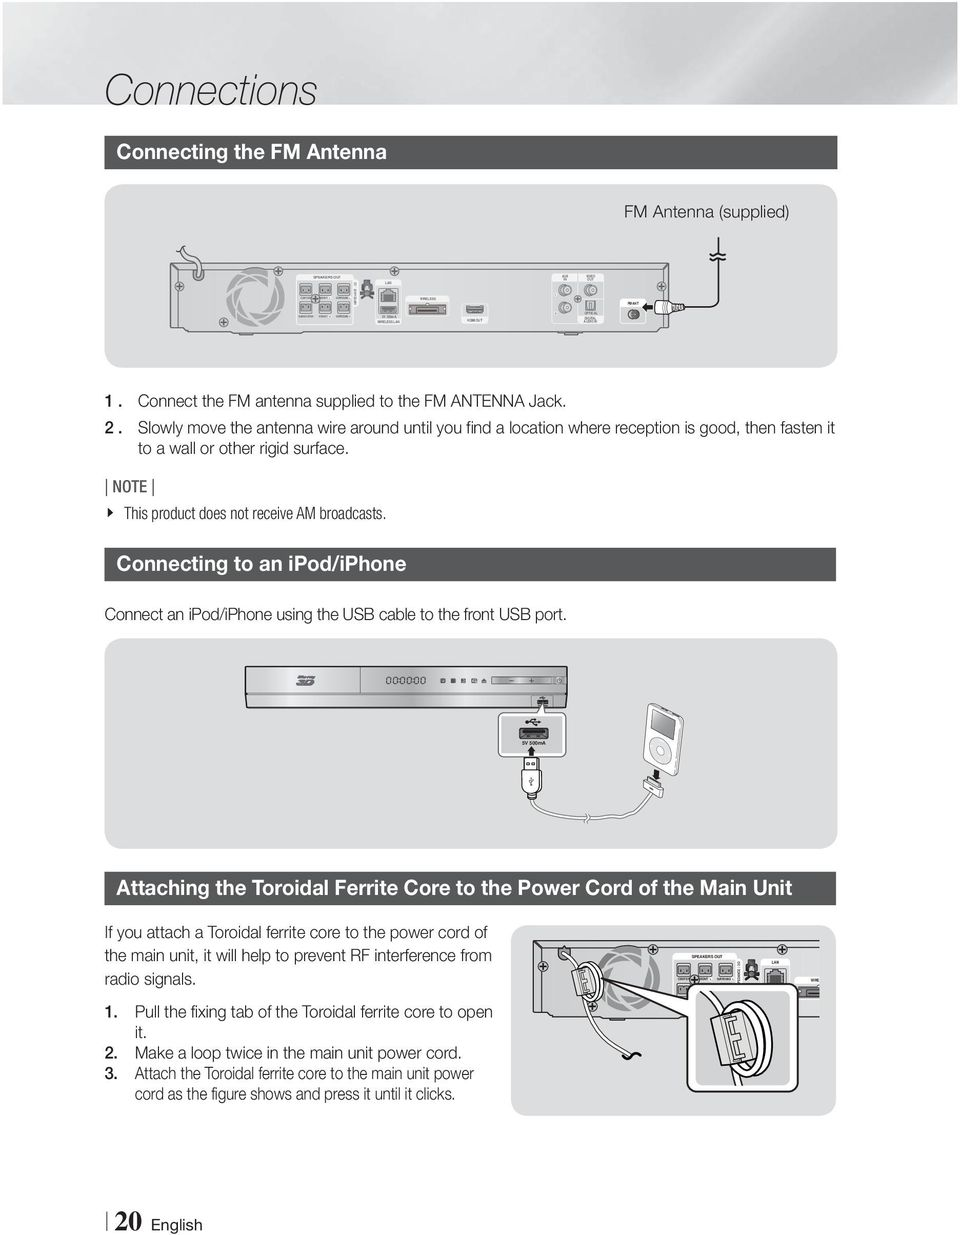 51ch Blu Ray Home Entertainment System Pdf Iphone Usb Cable Wiring Diagram Plug Slowly Move The Antenna Wire Around Until You Find A Location Where Reception Is Good